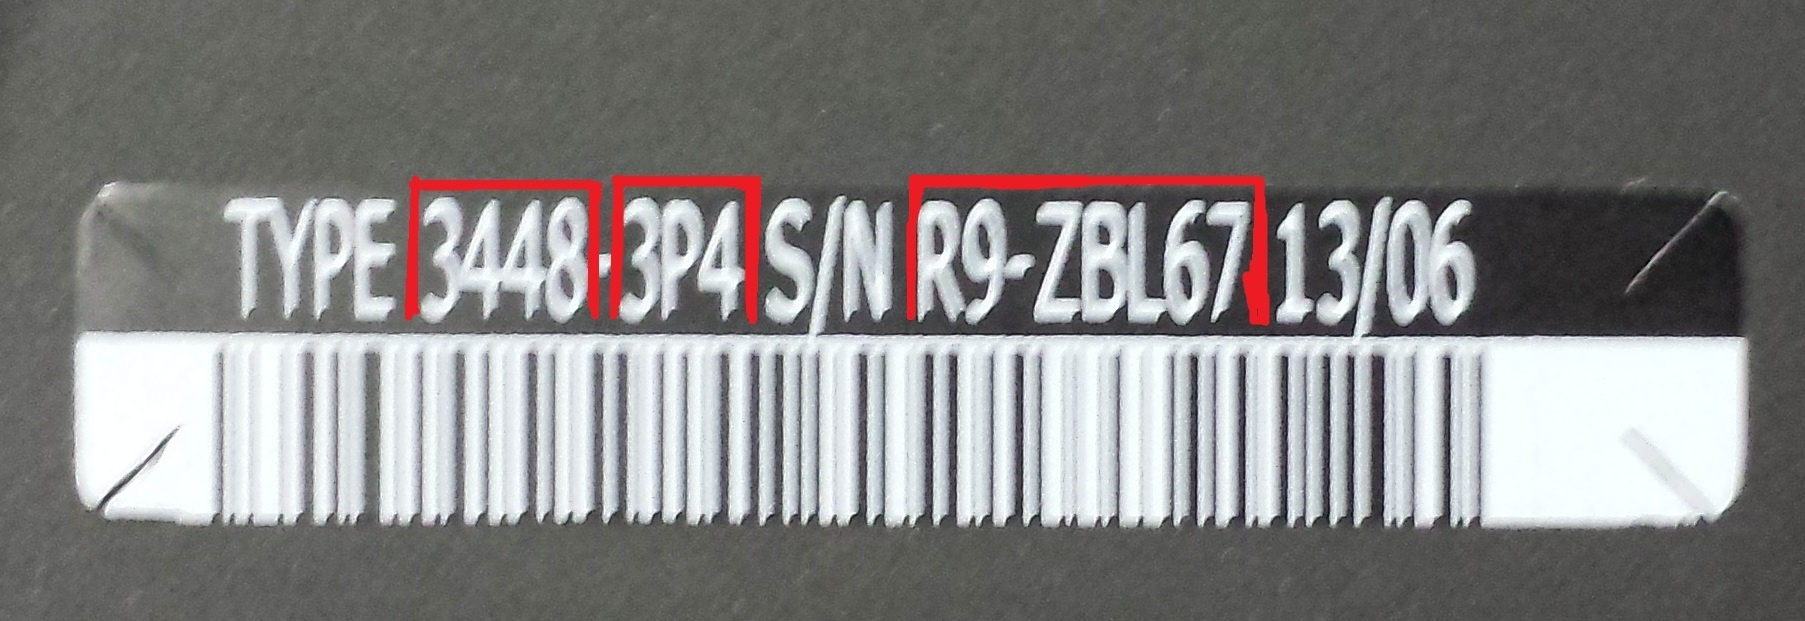 where can i find my laptop serial number lenovo